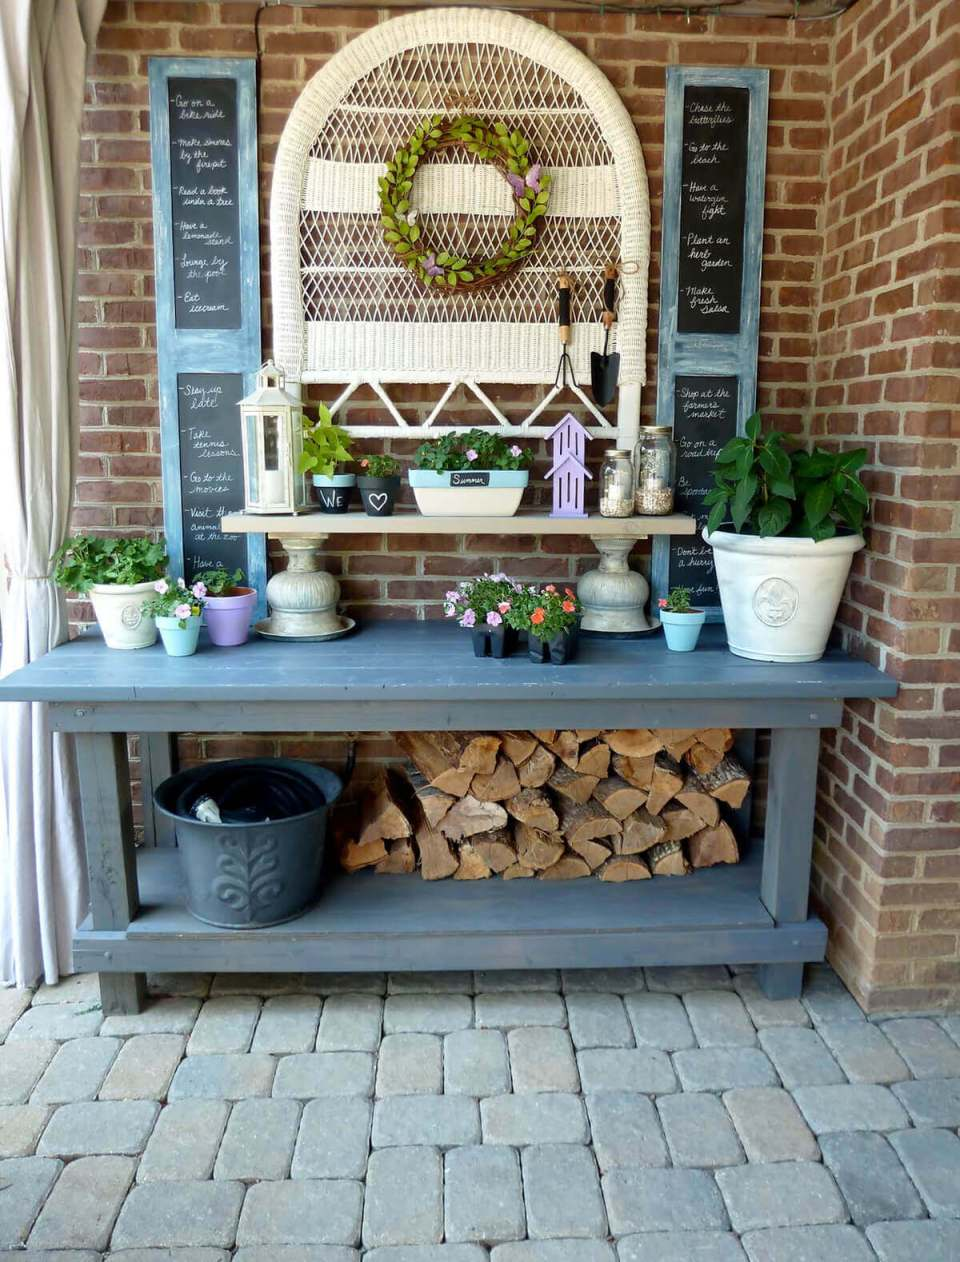 Chalkboard Accents, Firewood, and Other Whimsies